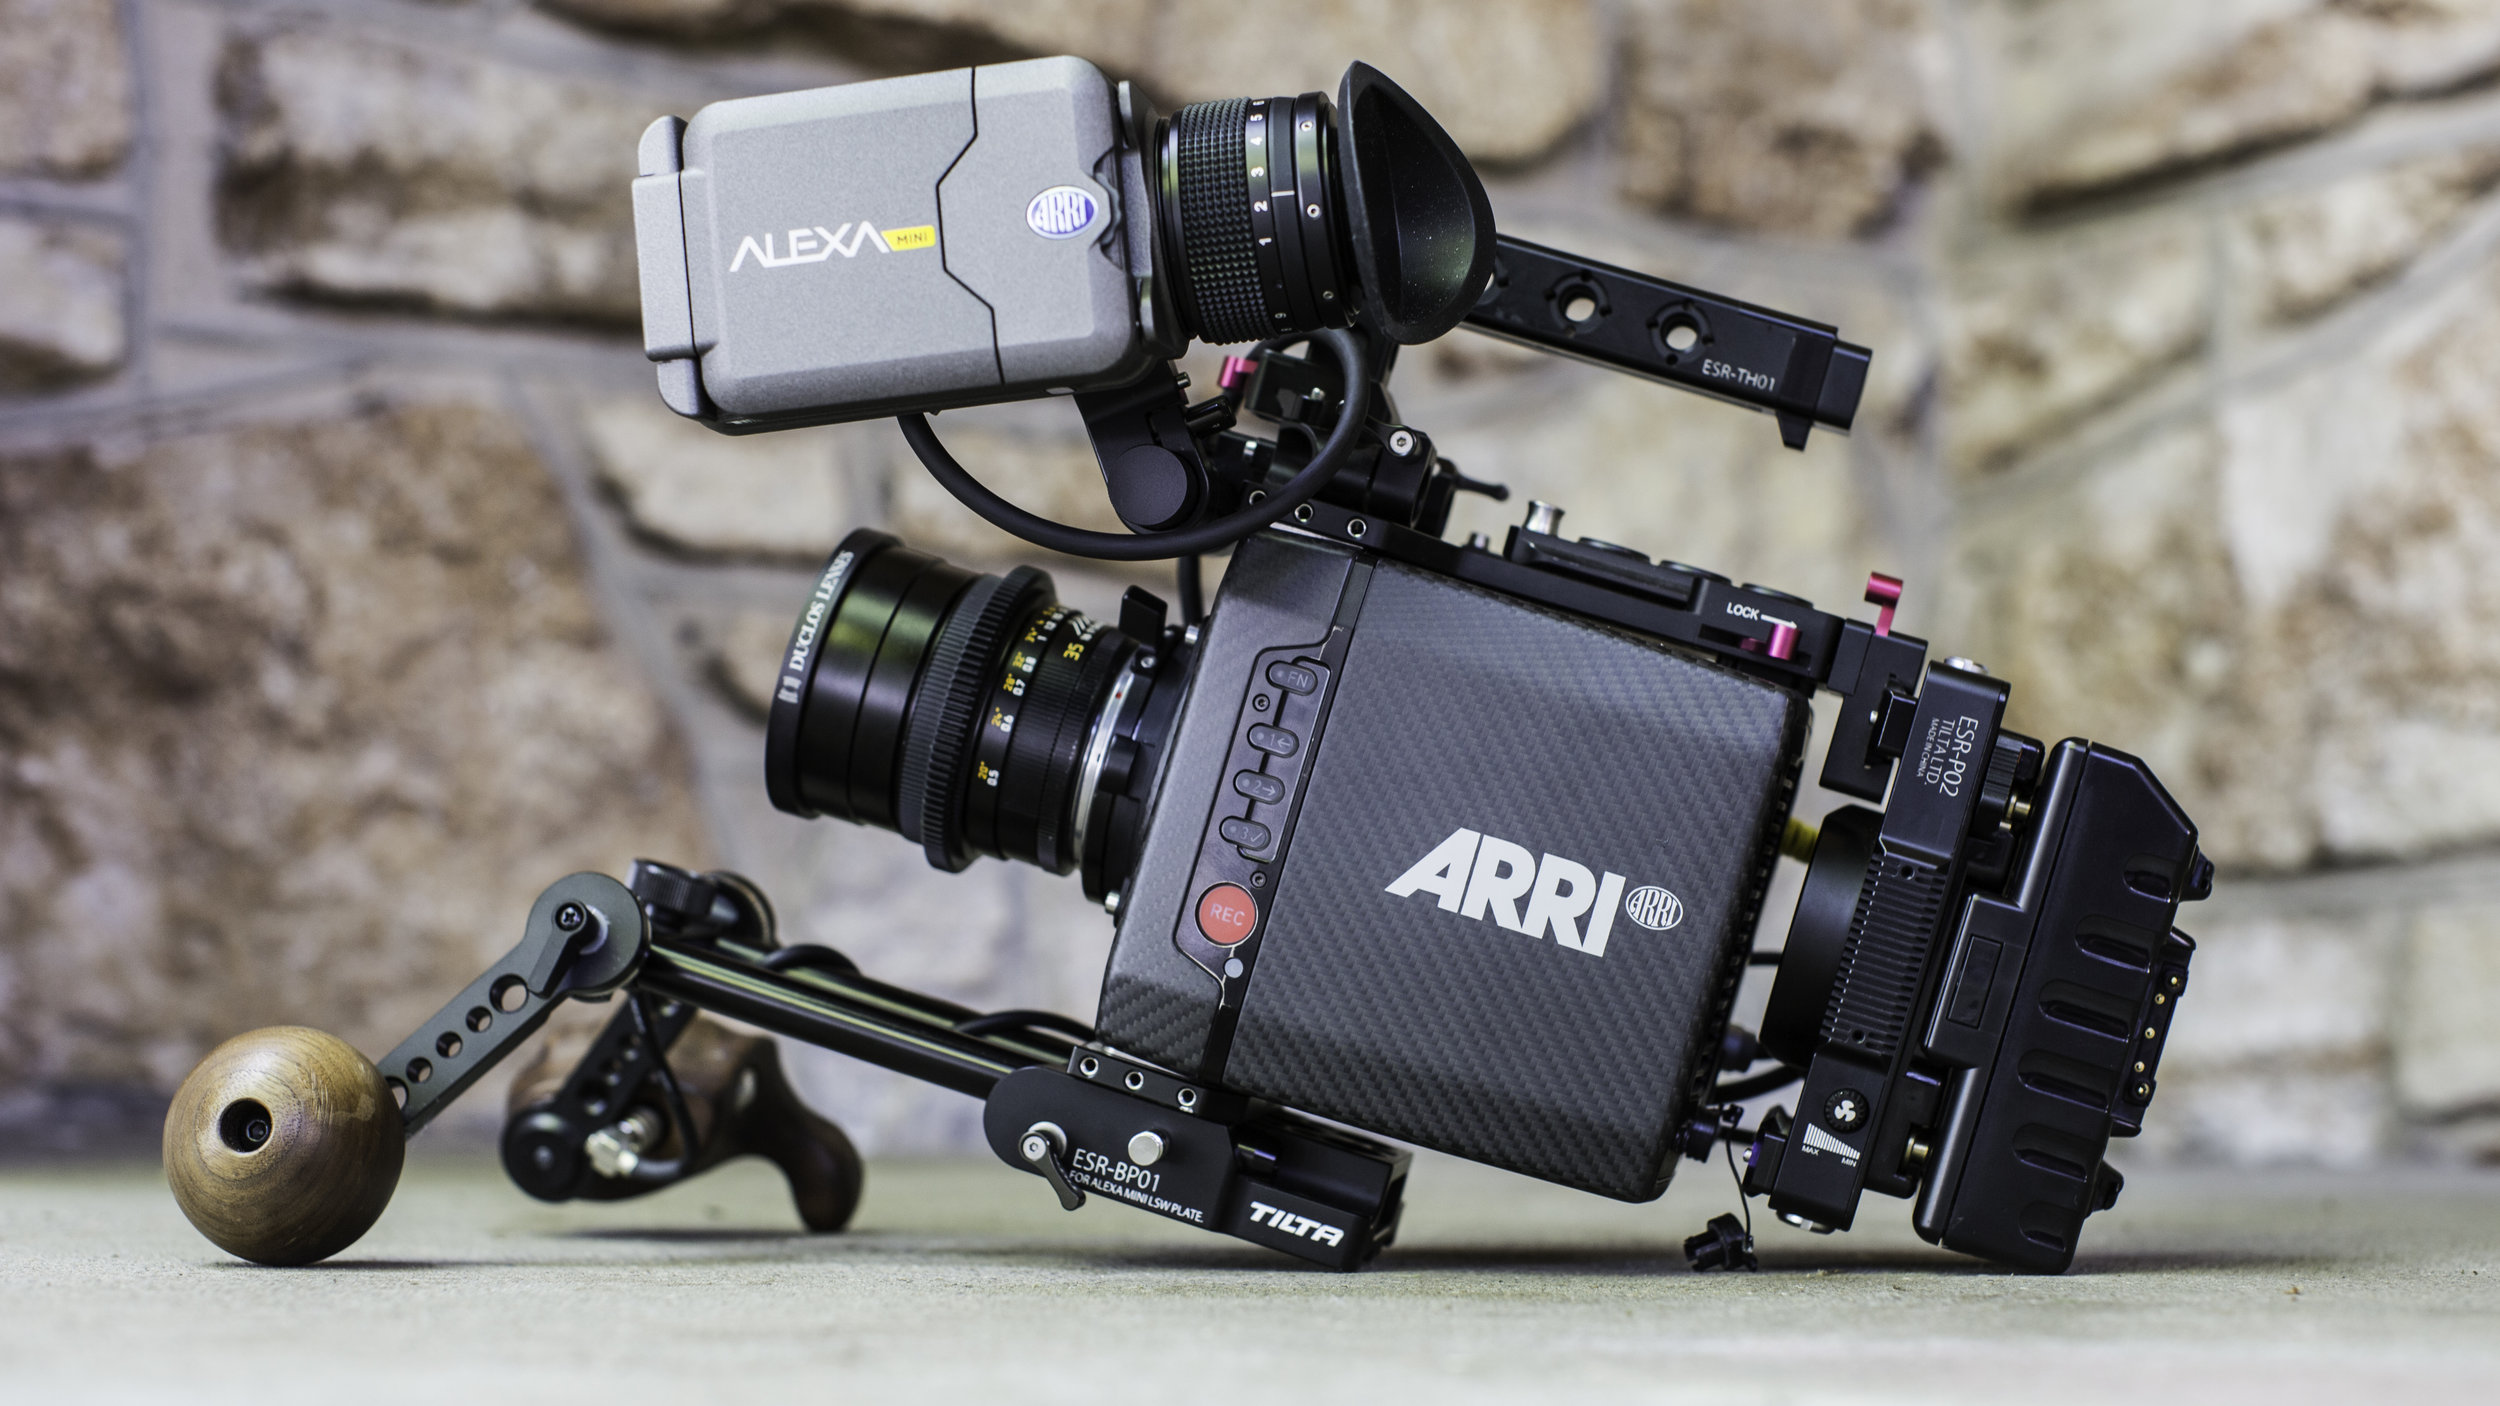 ARRI Alexa Mini - COMPLETE PACKAGE INCLUDES:- Tilta Alexa Mini Rig- ARRI PL and/or EF mounts- 4x256GB CFast 2.0 Cards- Gold Mount with 6 Paglink Batteries (3 - 150wh, 3 - 94wh)AVAILABLE SUPPORT FOR MINI:Small HD 503 Ultra Bright SDI monitorSmall HD 702 SDI monitorErgocine wooden grip handle set with start/stop triggerSachtler FSB 10 TripodEasyrig